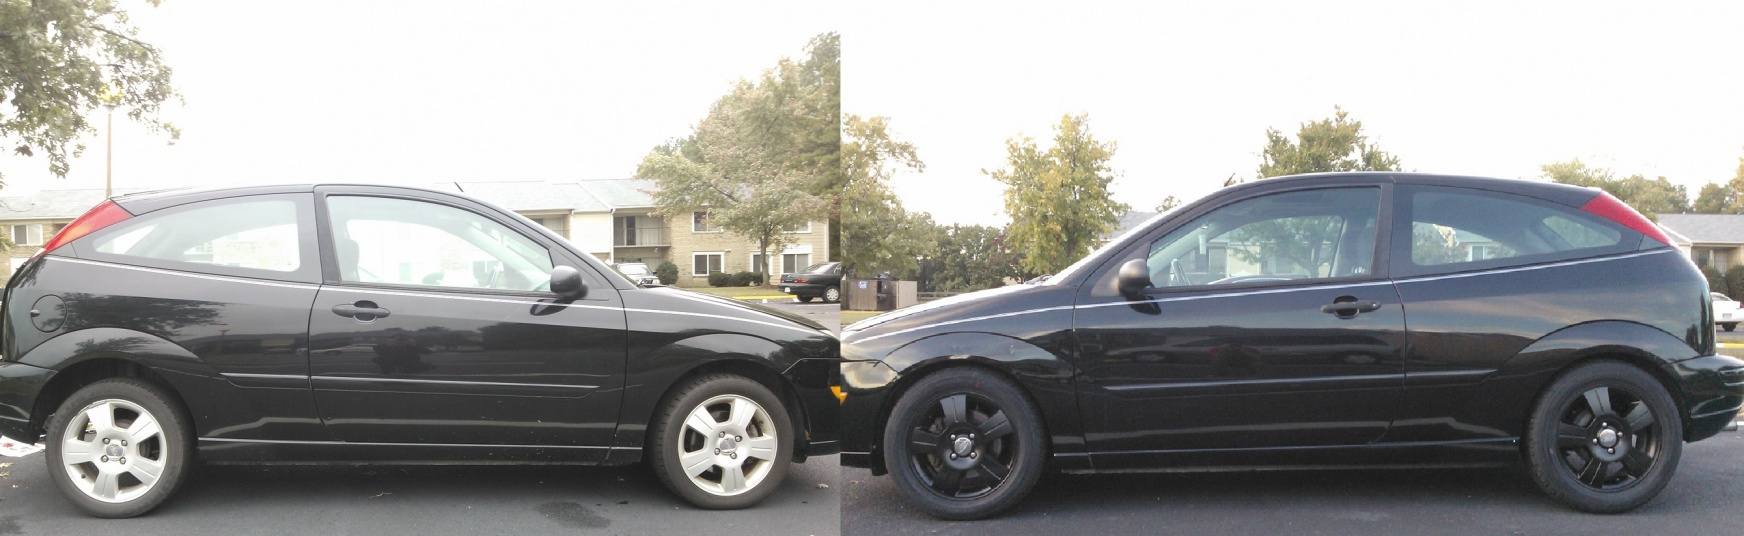 Tuning my ford focus zx3?-focus-before-after.jpg